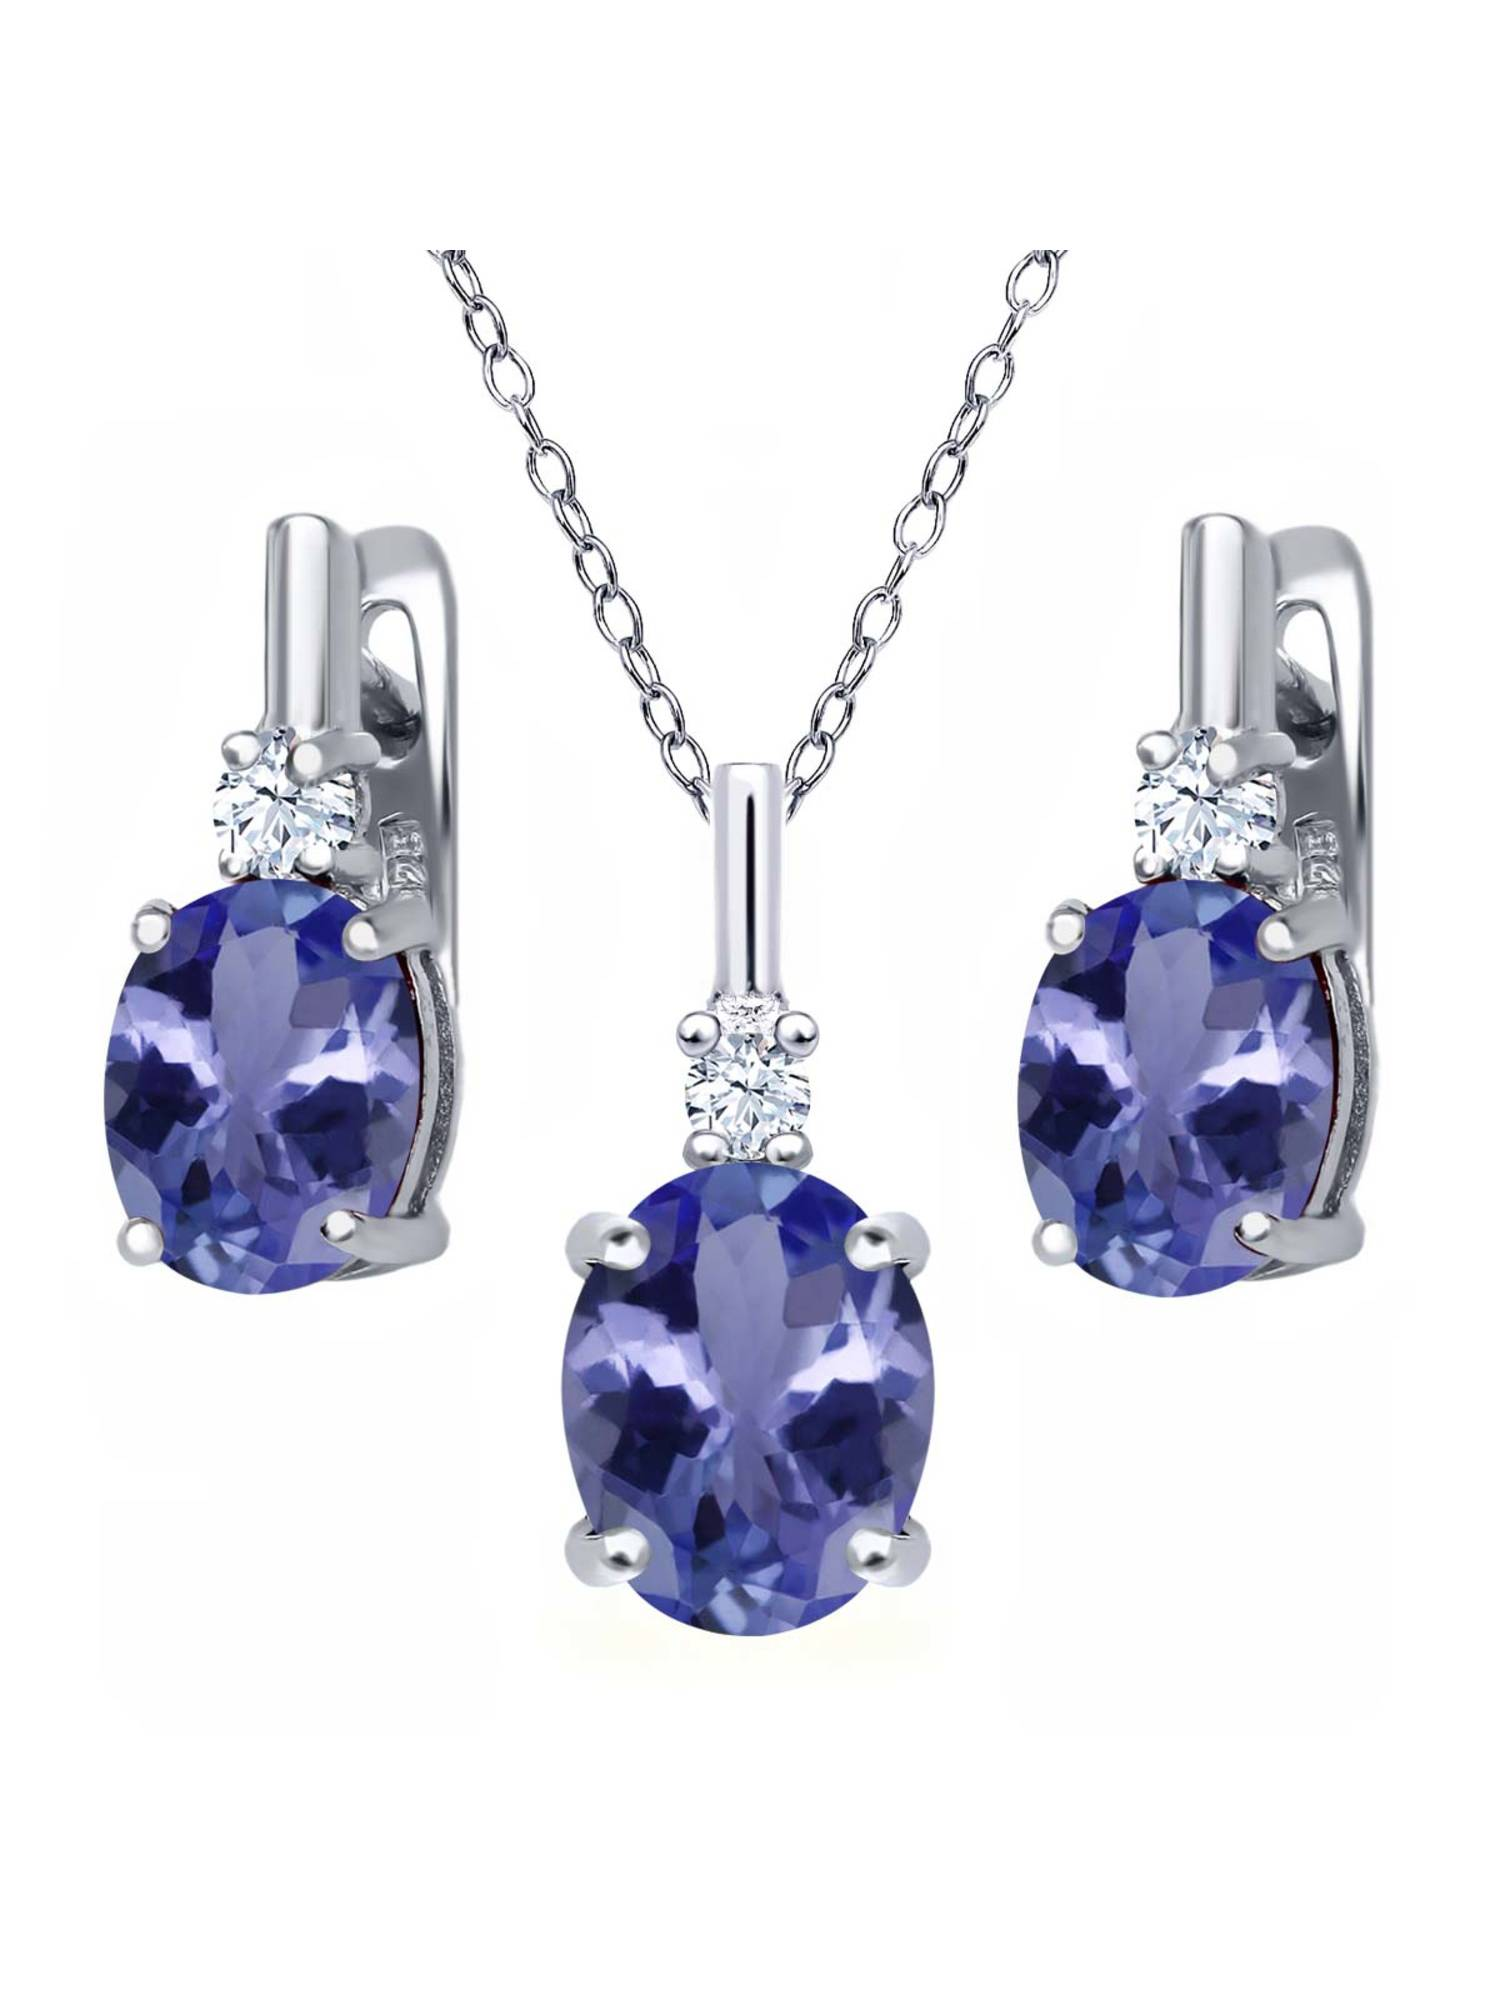 5.18 Ct Blue Tanzanite AAA White Topaz 925 Sterling Silver Pendant Earrings Set by